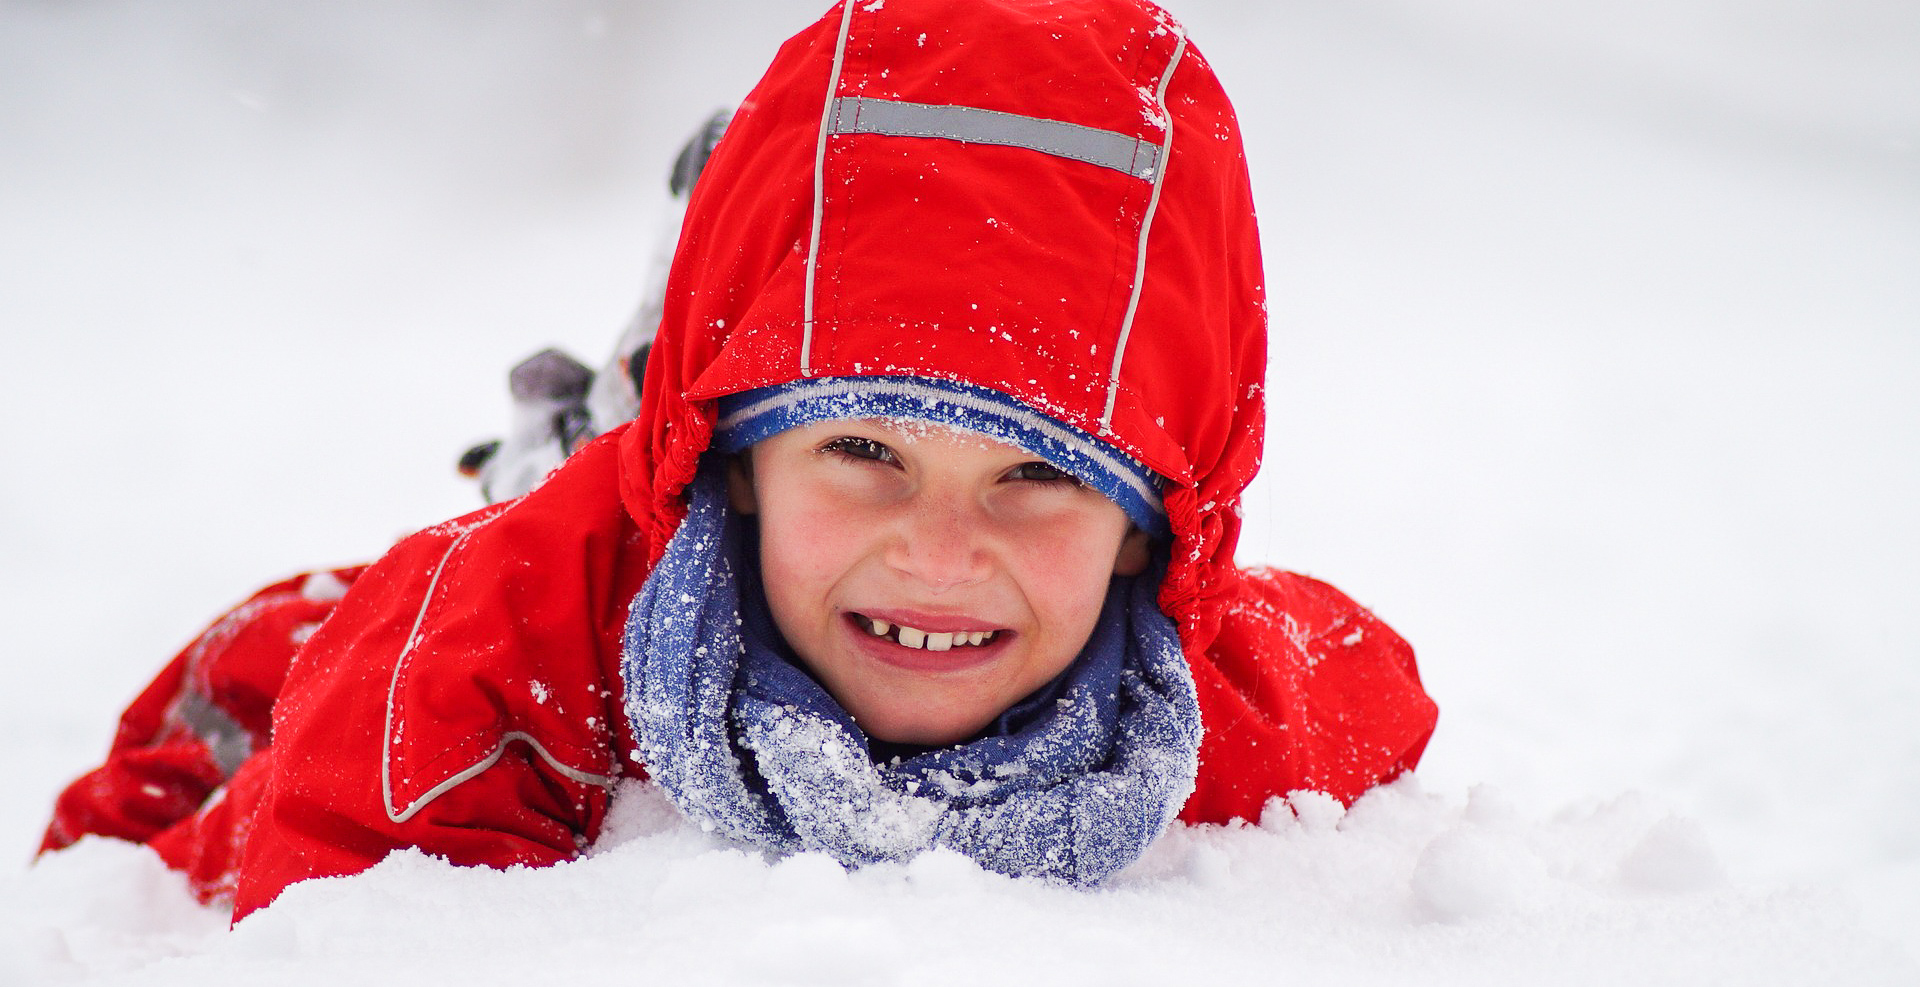 Photo of a young child in a red snowsuit playing in the snow, facing the camera and smiling